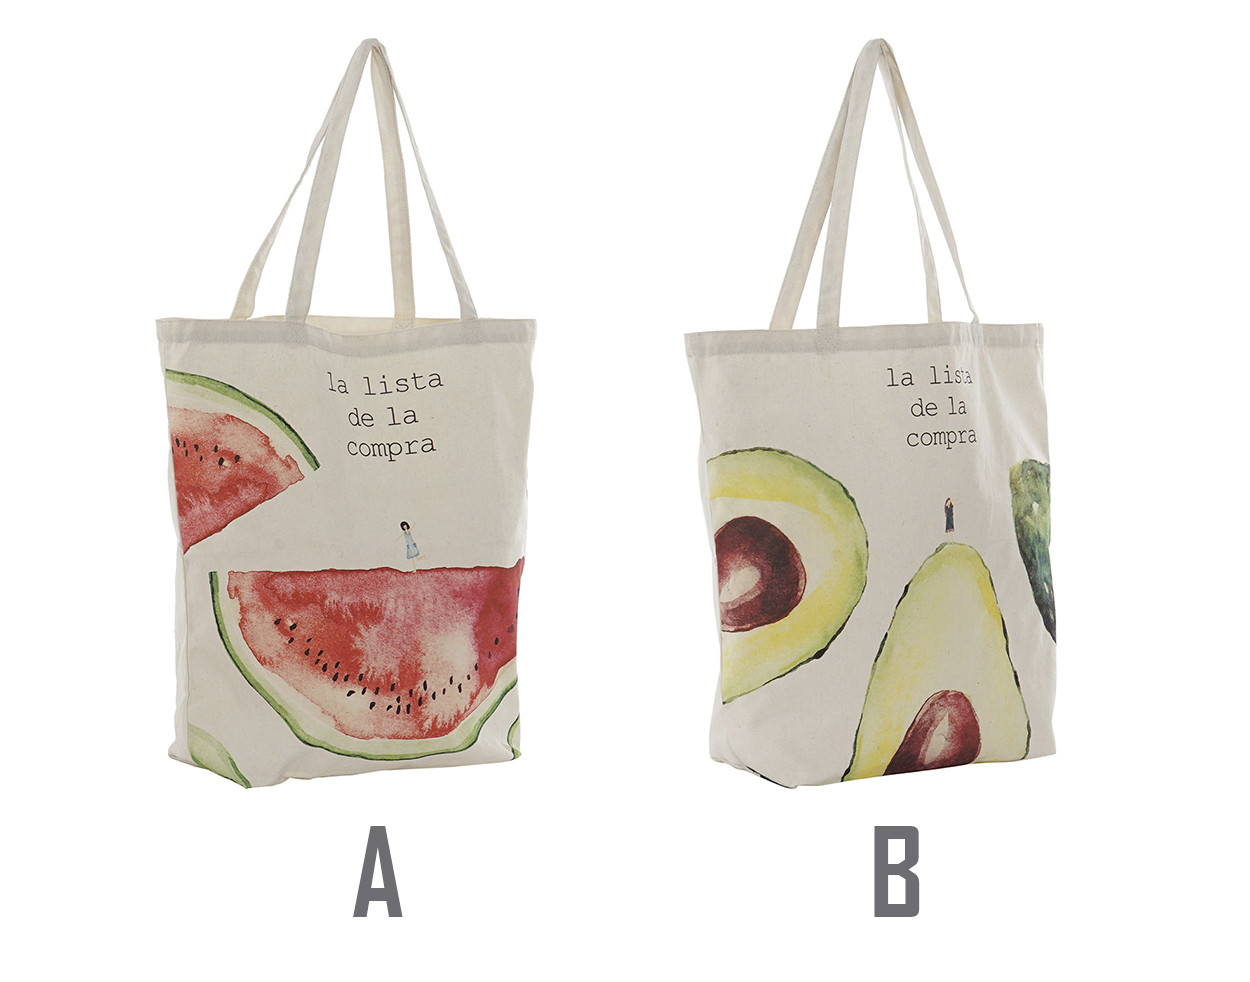 Hand bag for Shopping, Cotton Bag with Handles, Design Fruity 43x15x40 cm - Home and More